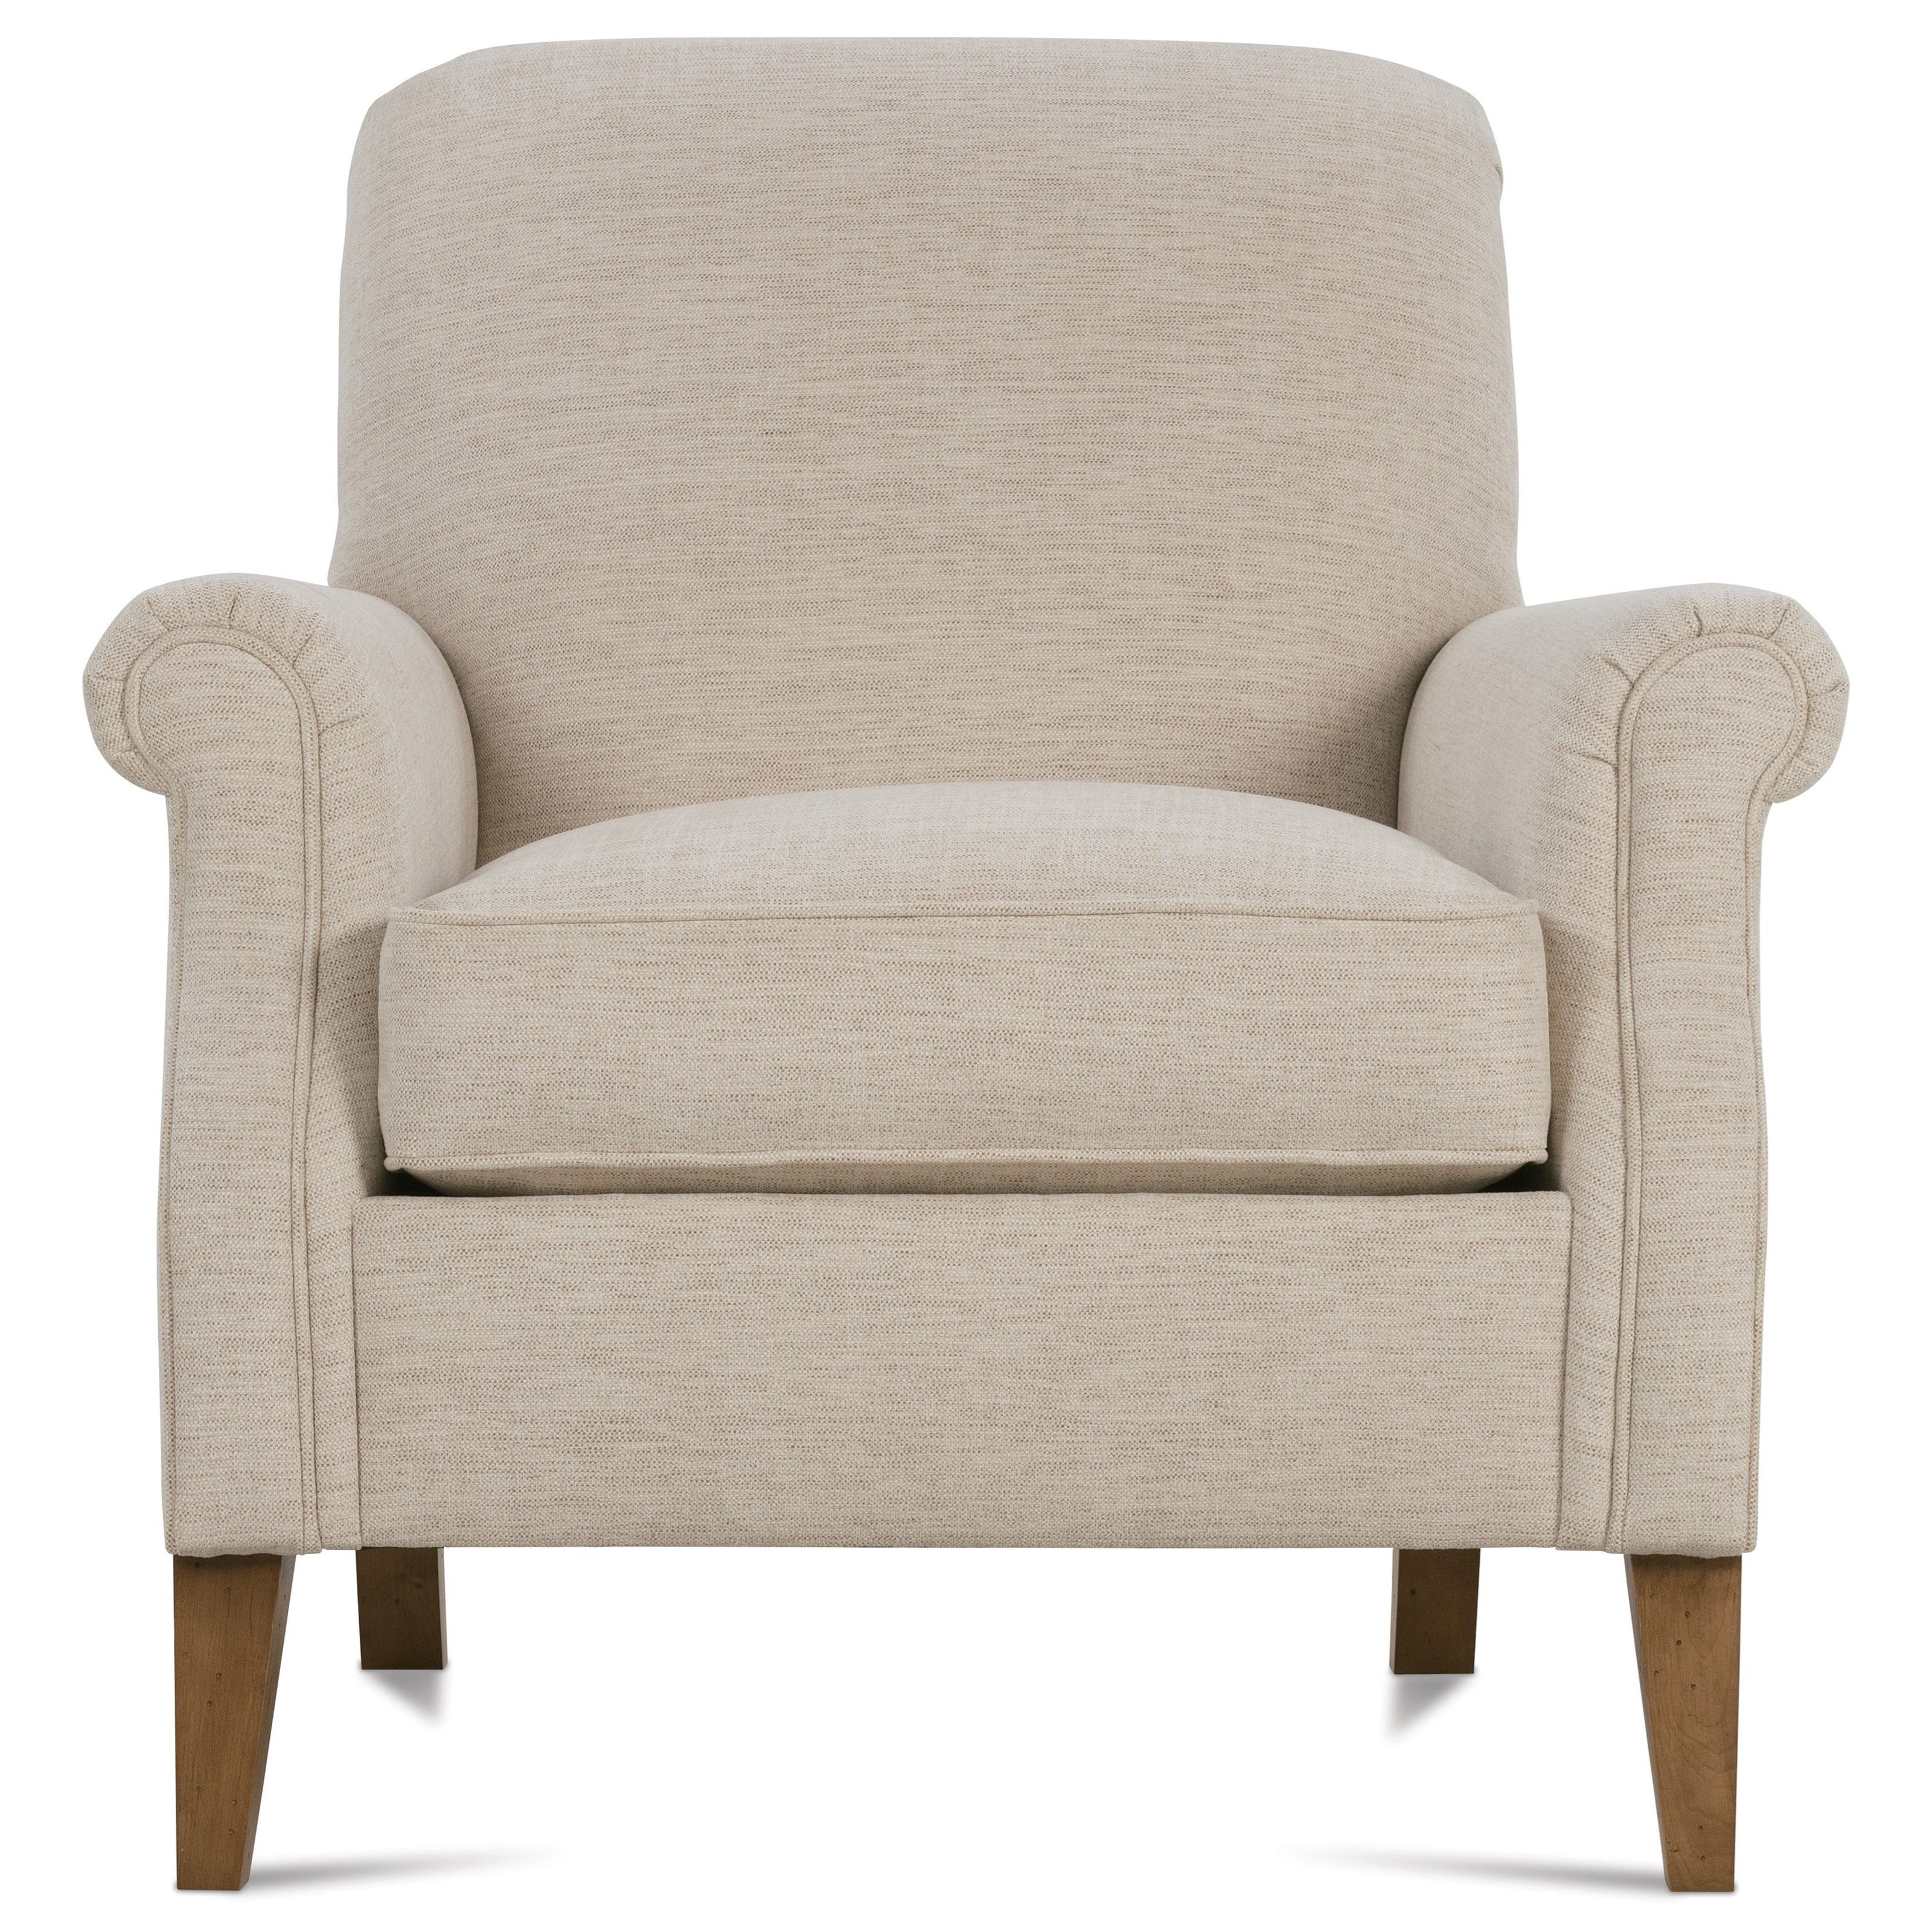 Rowe Channing Transitional Chair With Rolled Arms And Tight Seat Back |  Belfort Furniture | Upholstered Chairs